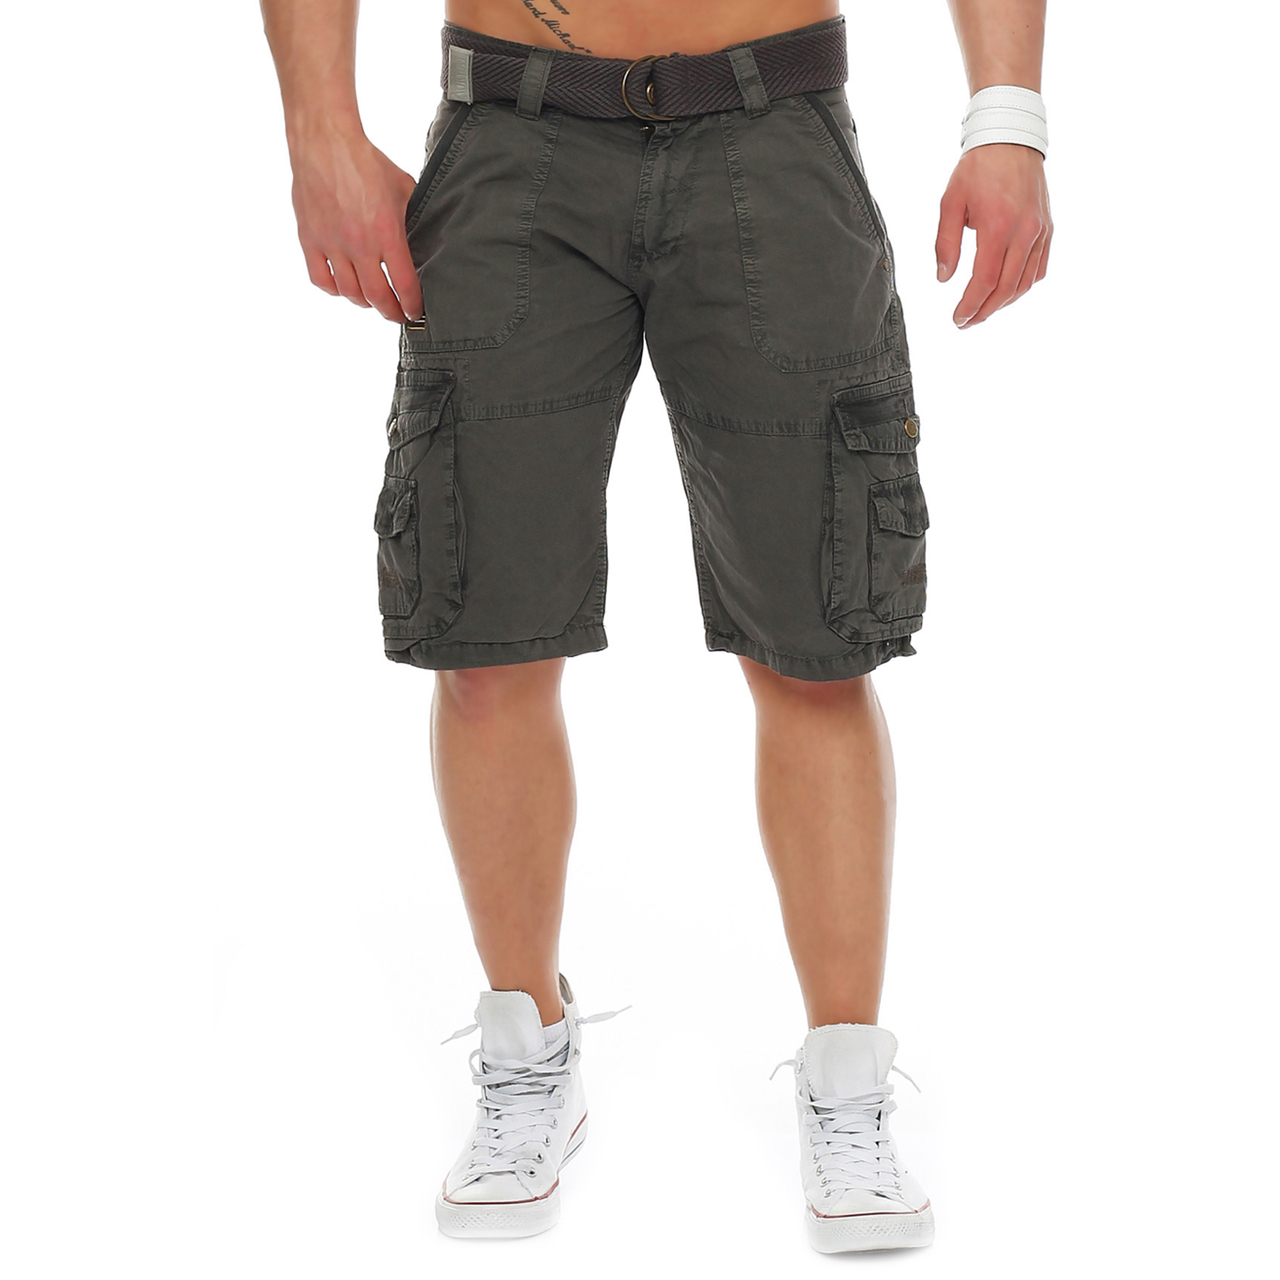 geographical norway parachute herren cargo shorts bermuda kurze hose ebay. Black Bedroom Furniture Sets. Home Design Ideas